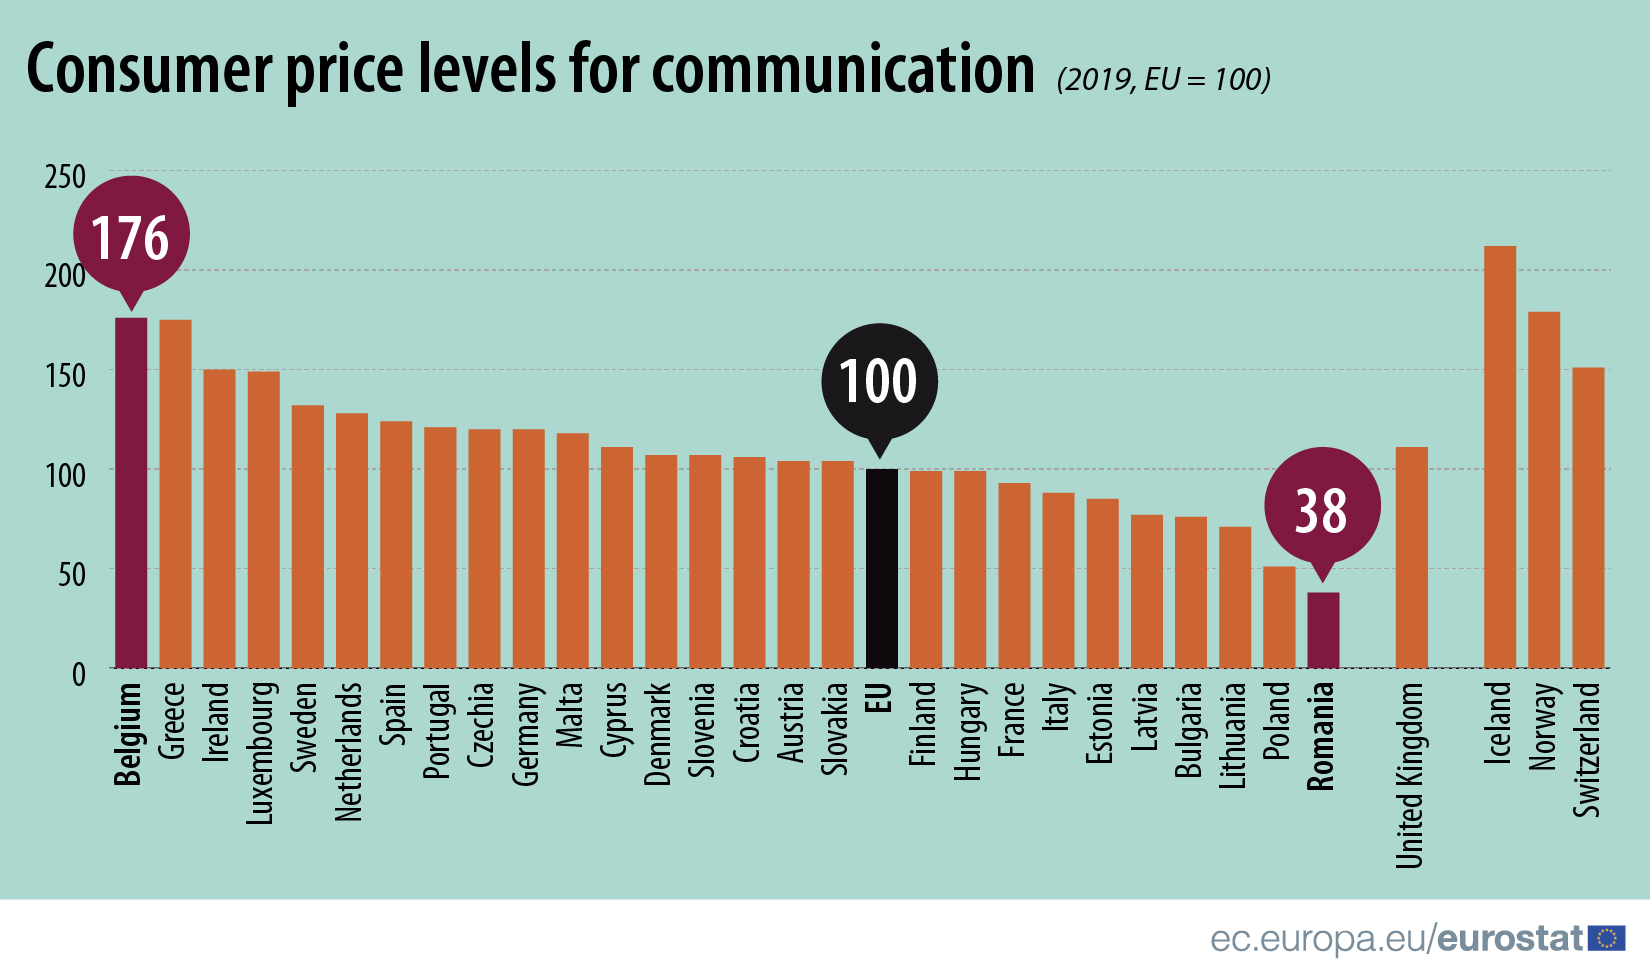 Consumer price levels for communication, 2019